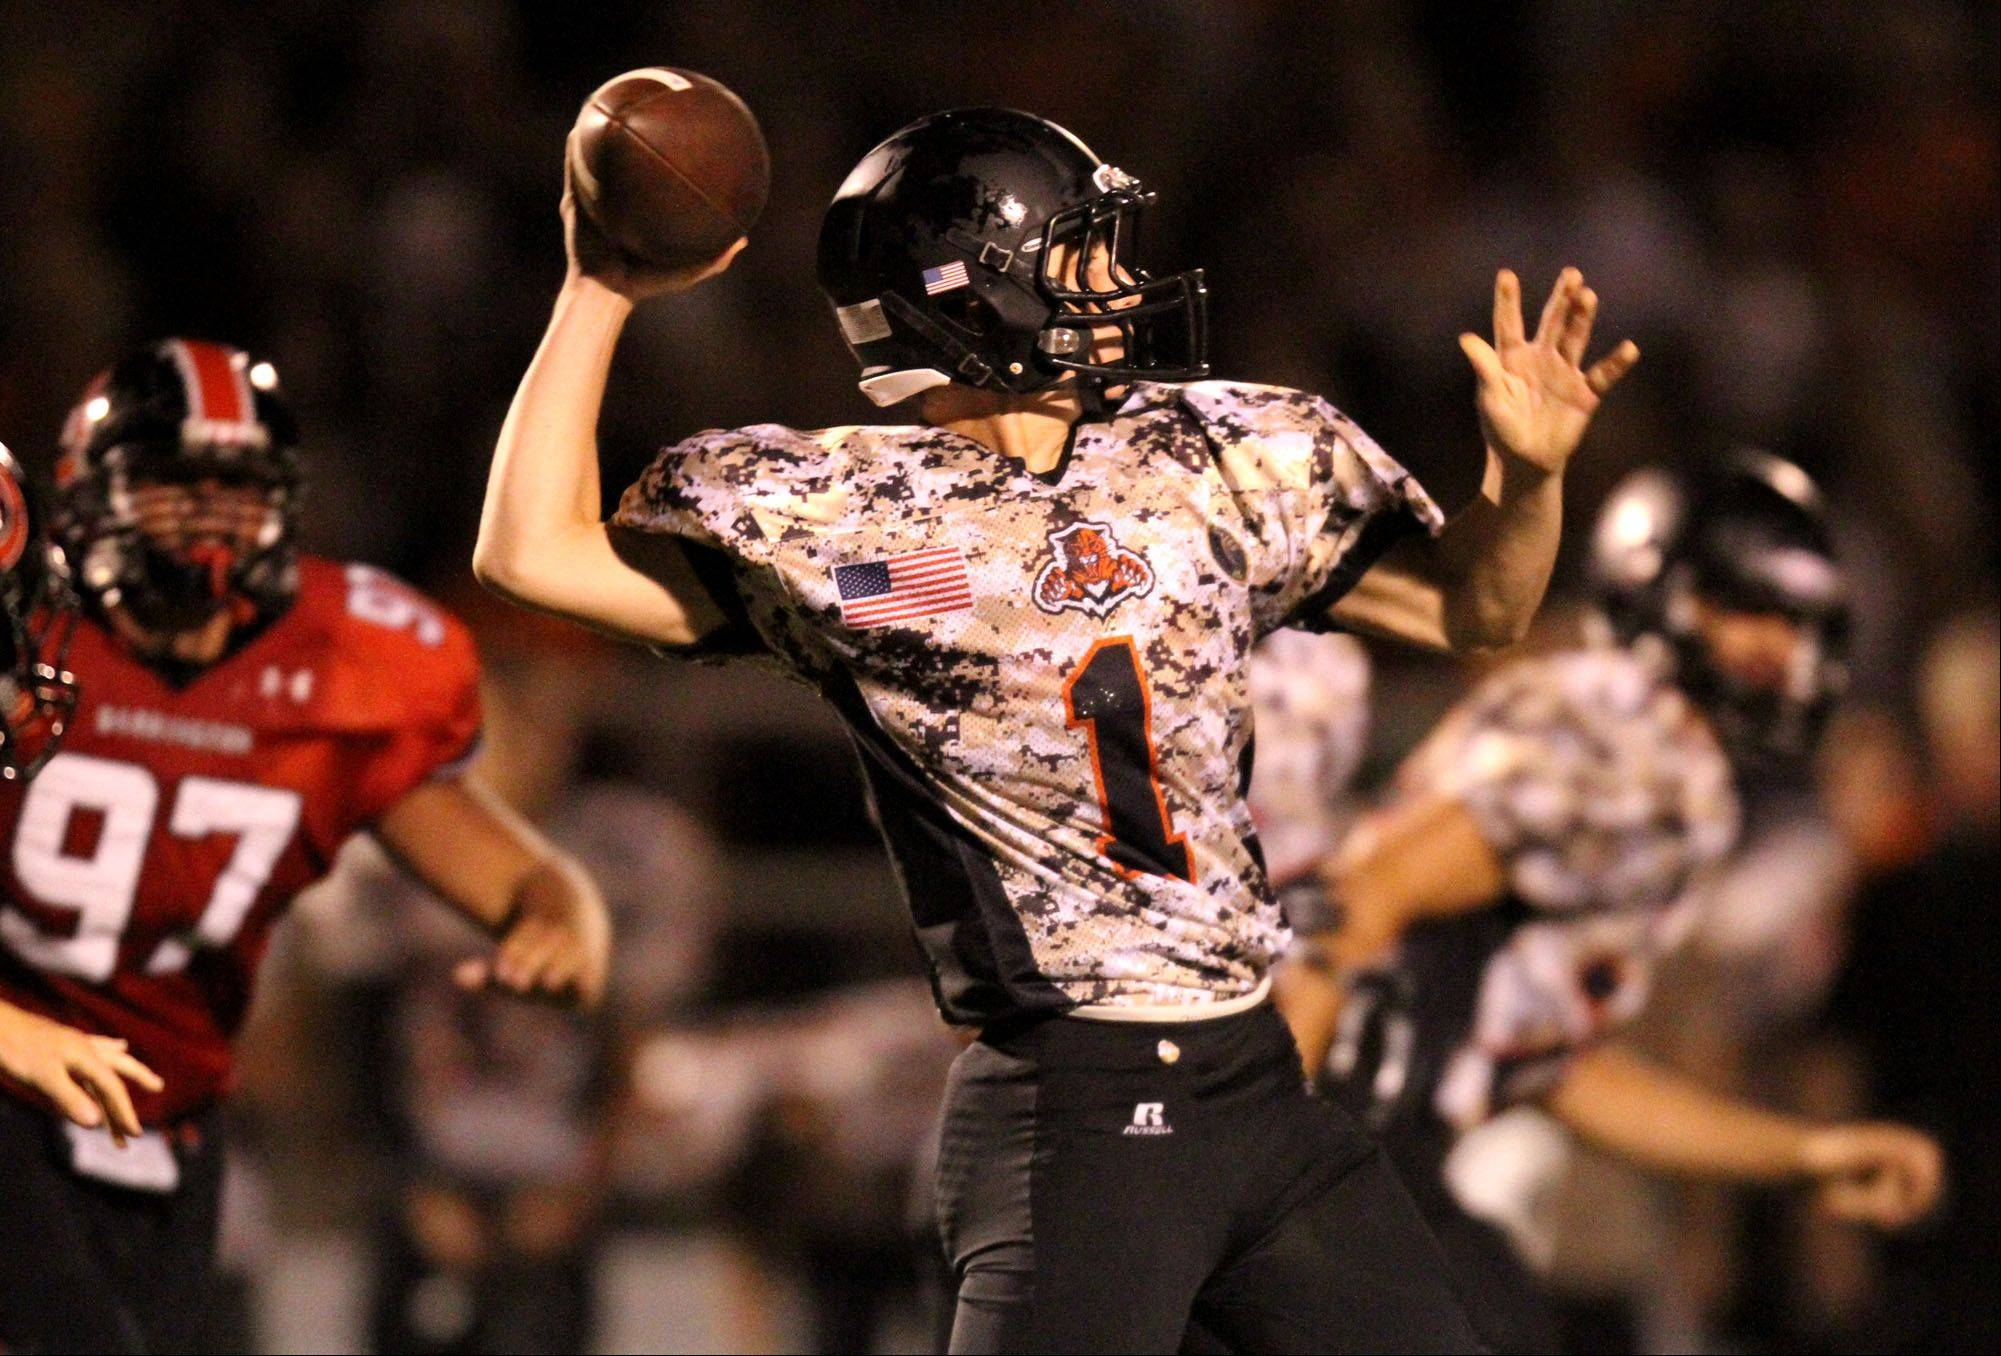 Libertyville quarterback Hutch Herchenbach passes against Barrington at Libertyville on Friday, August 26th.